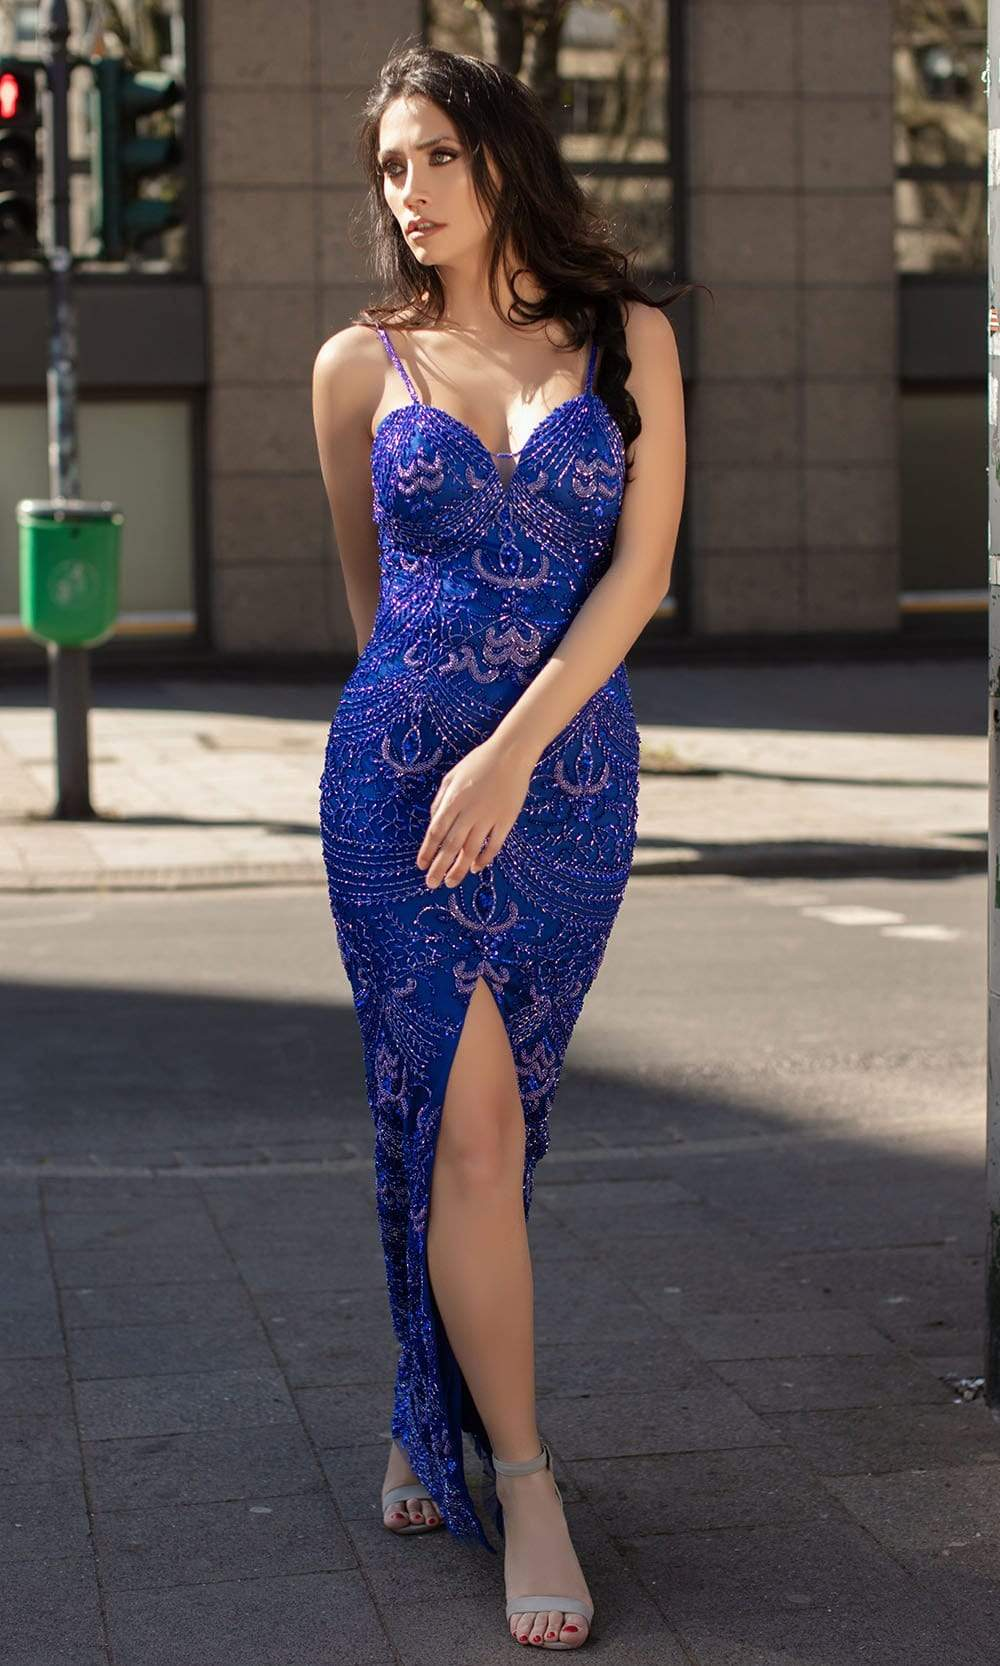 Chic and Holland - AN1483 Glitter Sweetheart Dress with Slit from Chic and Holland